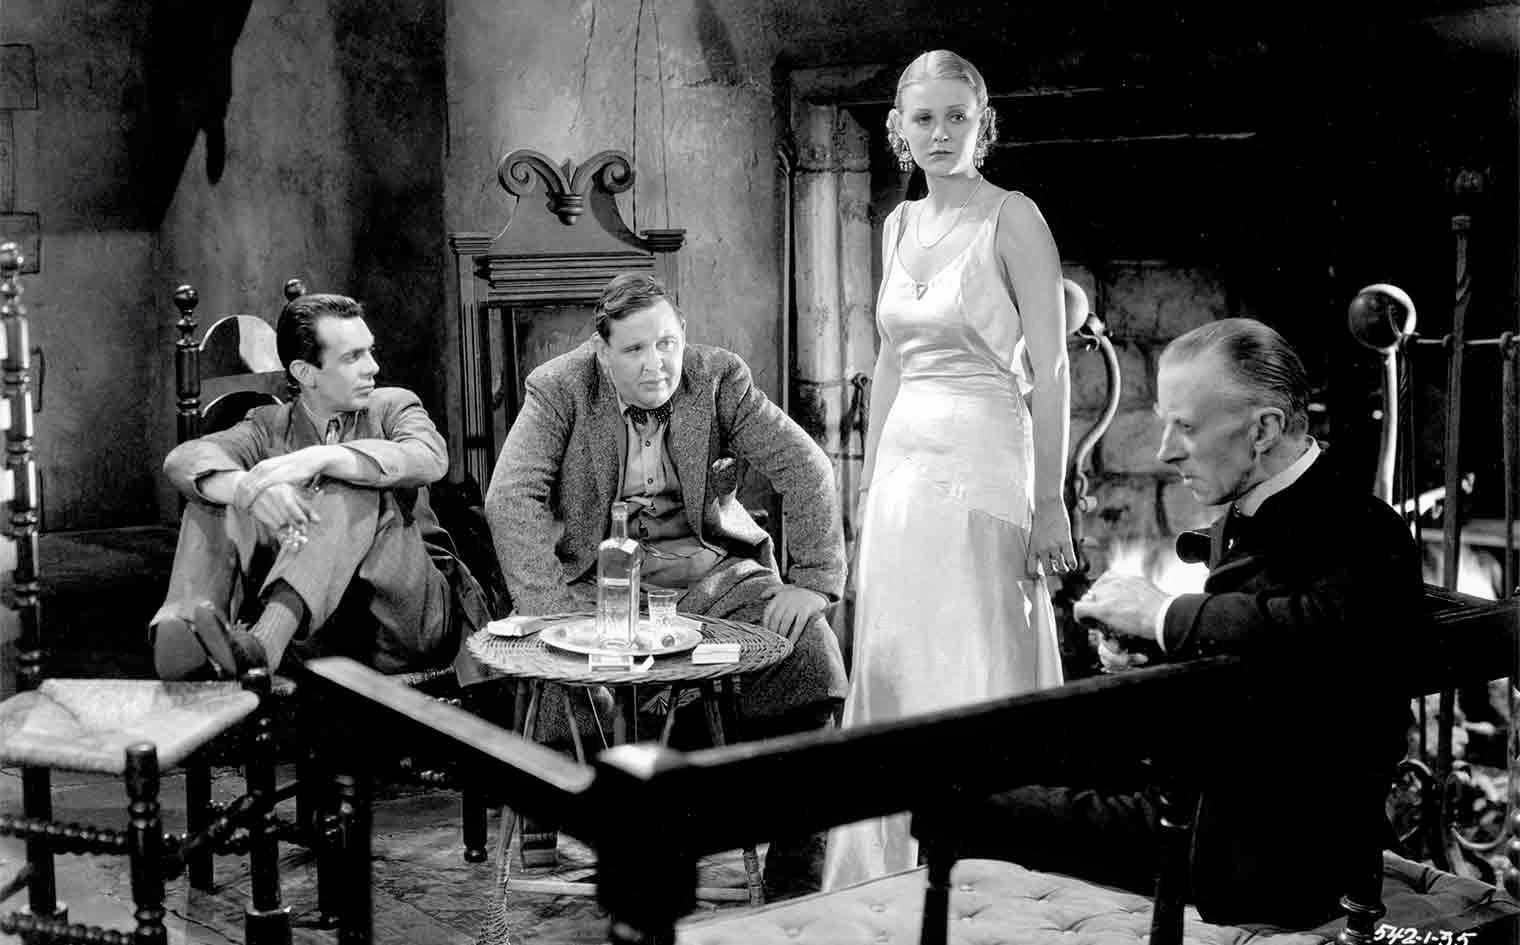 The visitors to the Femm house - Melvyn Douglas, Charles Laughton, Gloria Stuart and host Ernest Thesiger in The Old Dark House (1932)